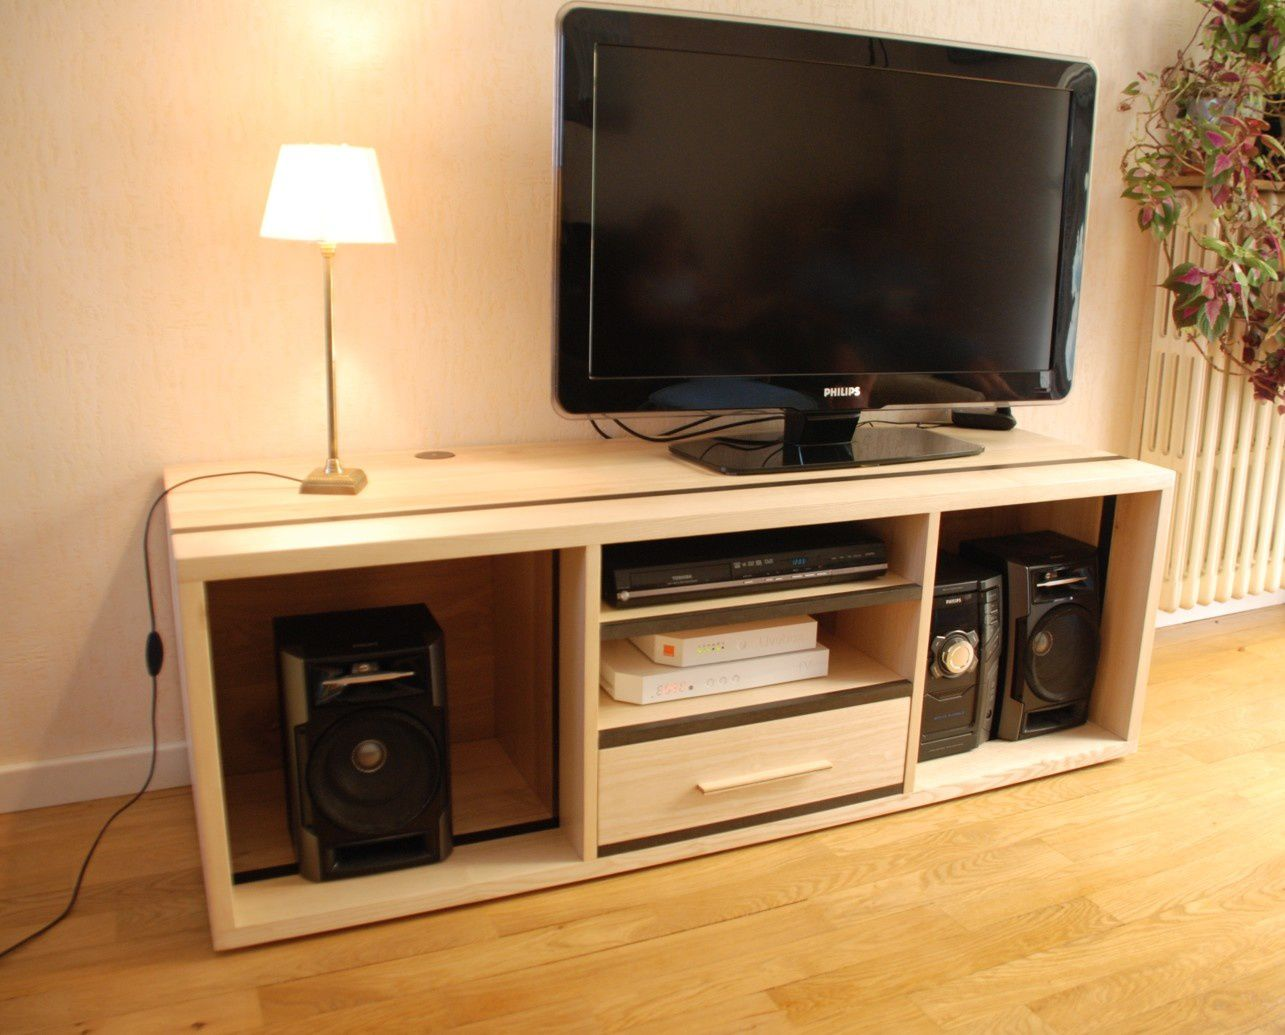 Album meuble tv hifi contemporain atelier pourquoi pas for Meuble hifi tv design